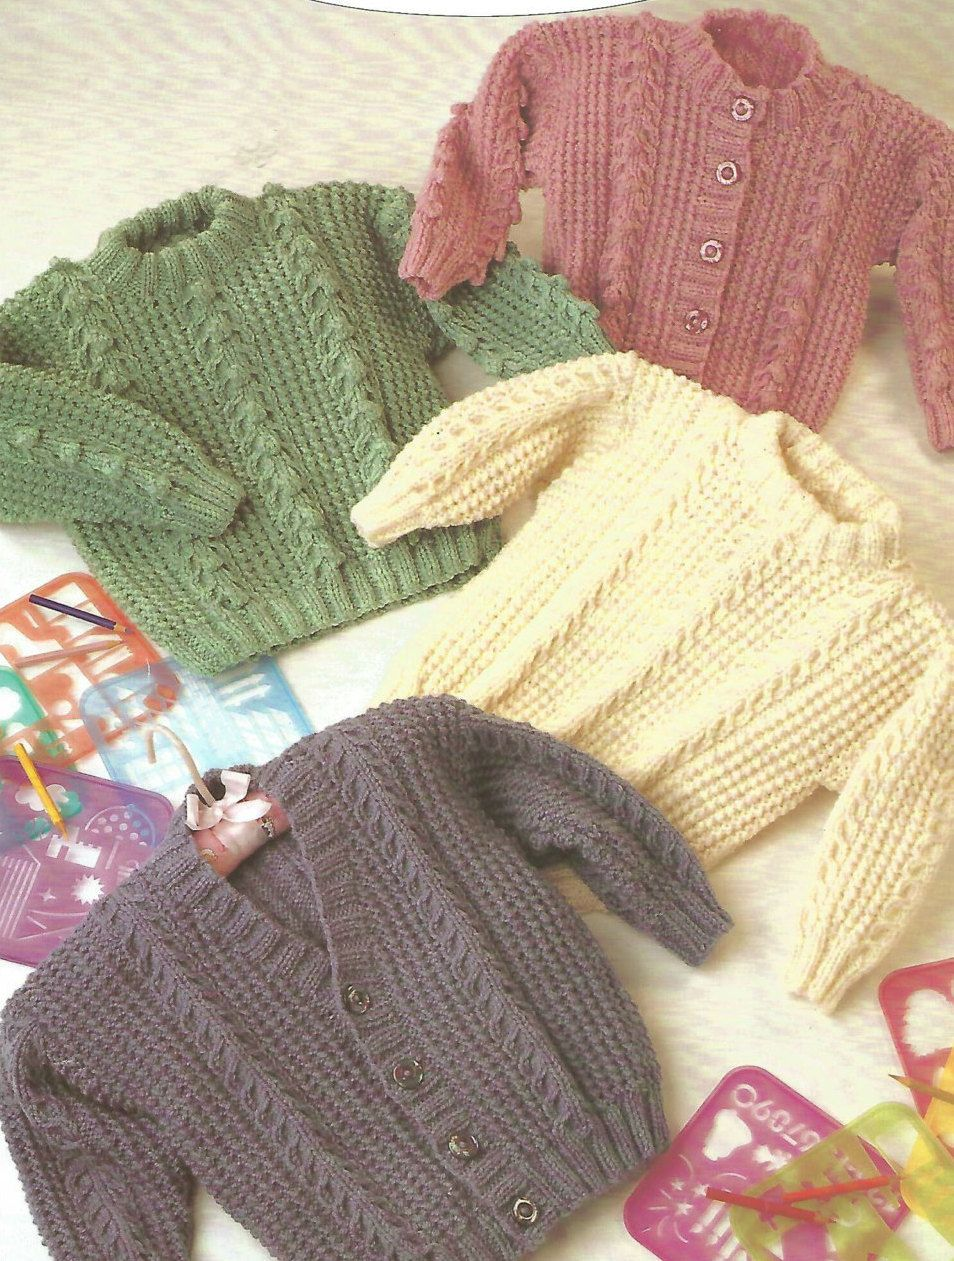 Jumper Patterns Knitting : Knitting Pattern Babies/Childrens Aran/Fisherman/12 Ply 4 Designs Cable ...